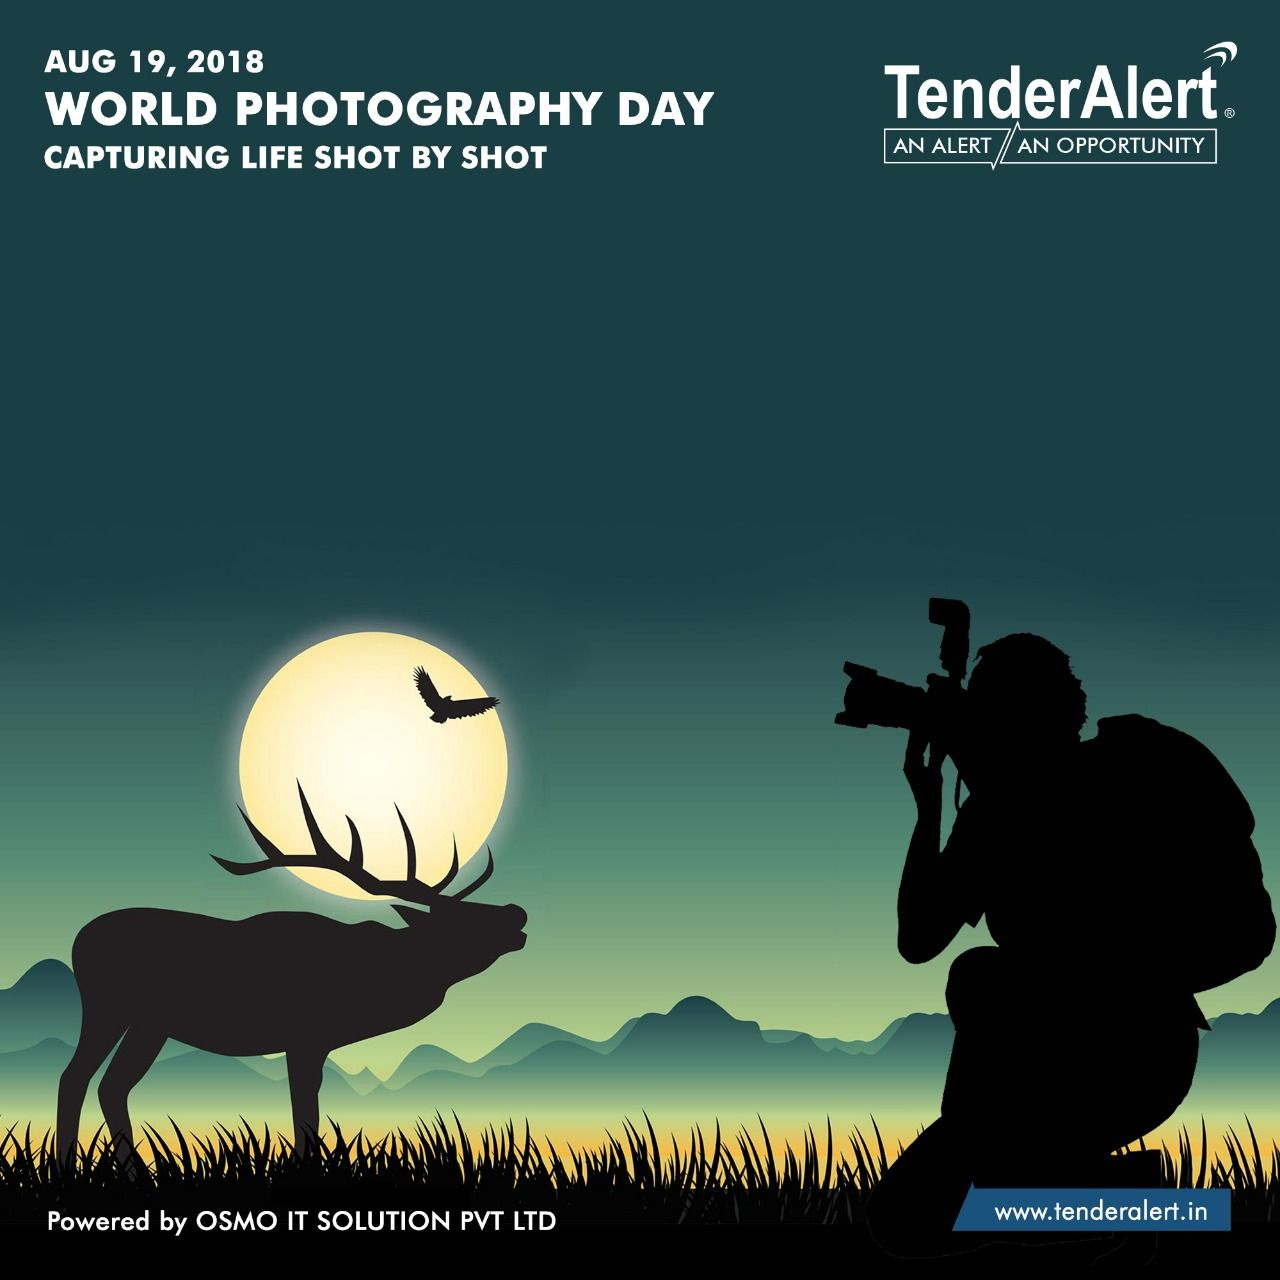 We Wish You A Very Happy World Photography Day Which Aims To Inspire Photographers Across The Planet Tender World Photography Day Shri Ram Photo Photography